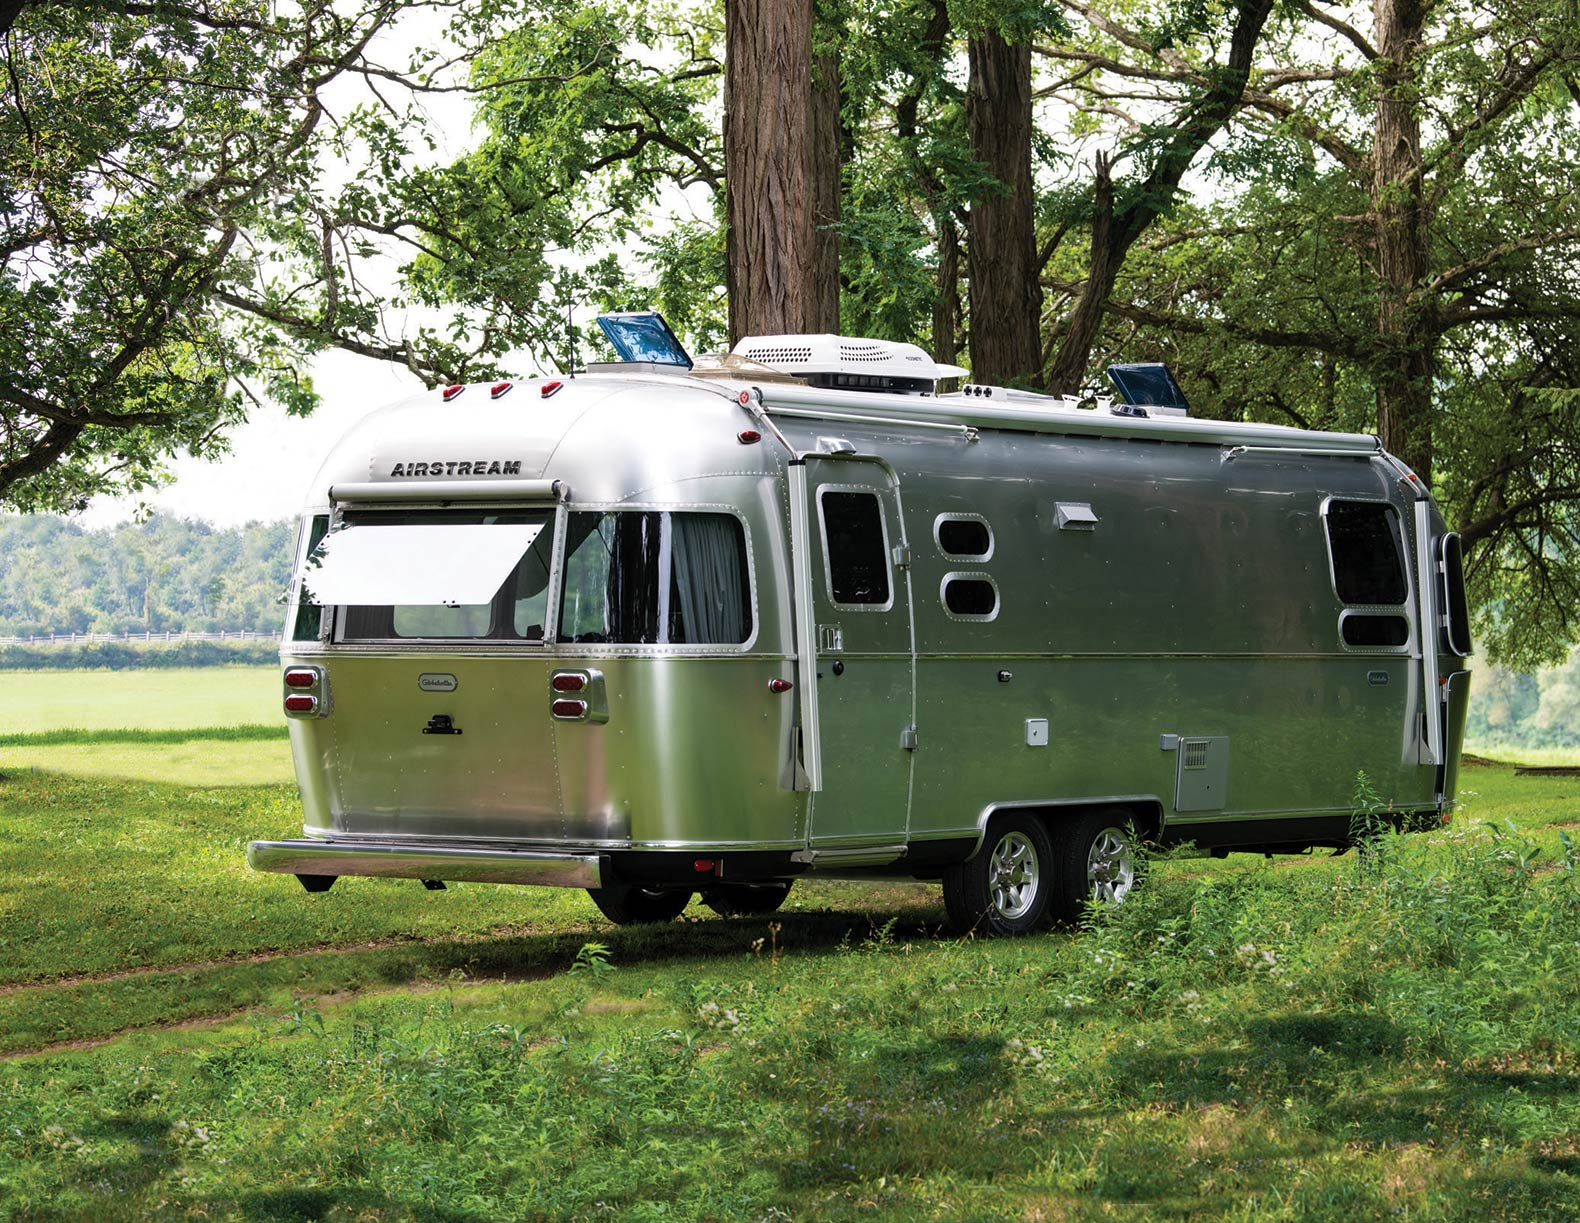 Airstream unveils new off-grid ready Globetrotter trailer